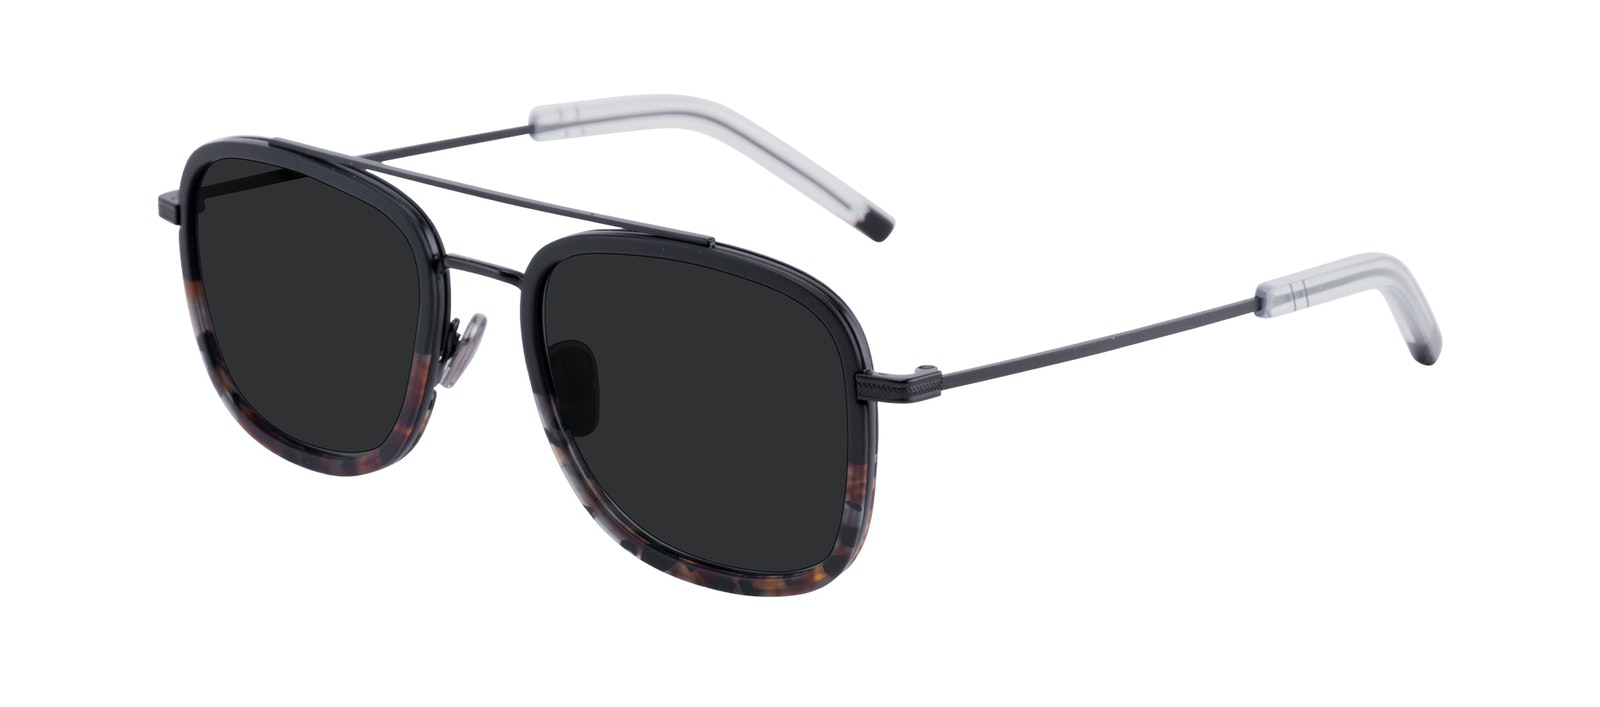 Affordable Fashion Glasses Aviator Rectangle Sunglasses Men Class Mahogany Tilt